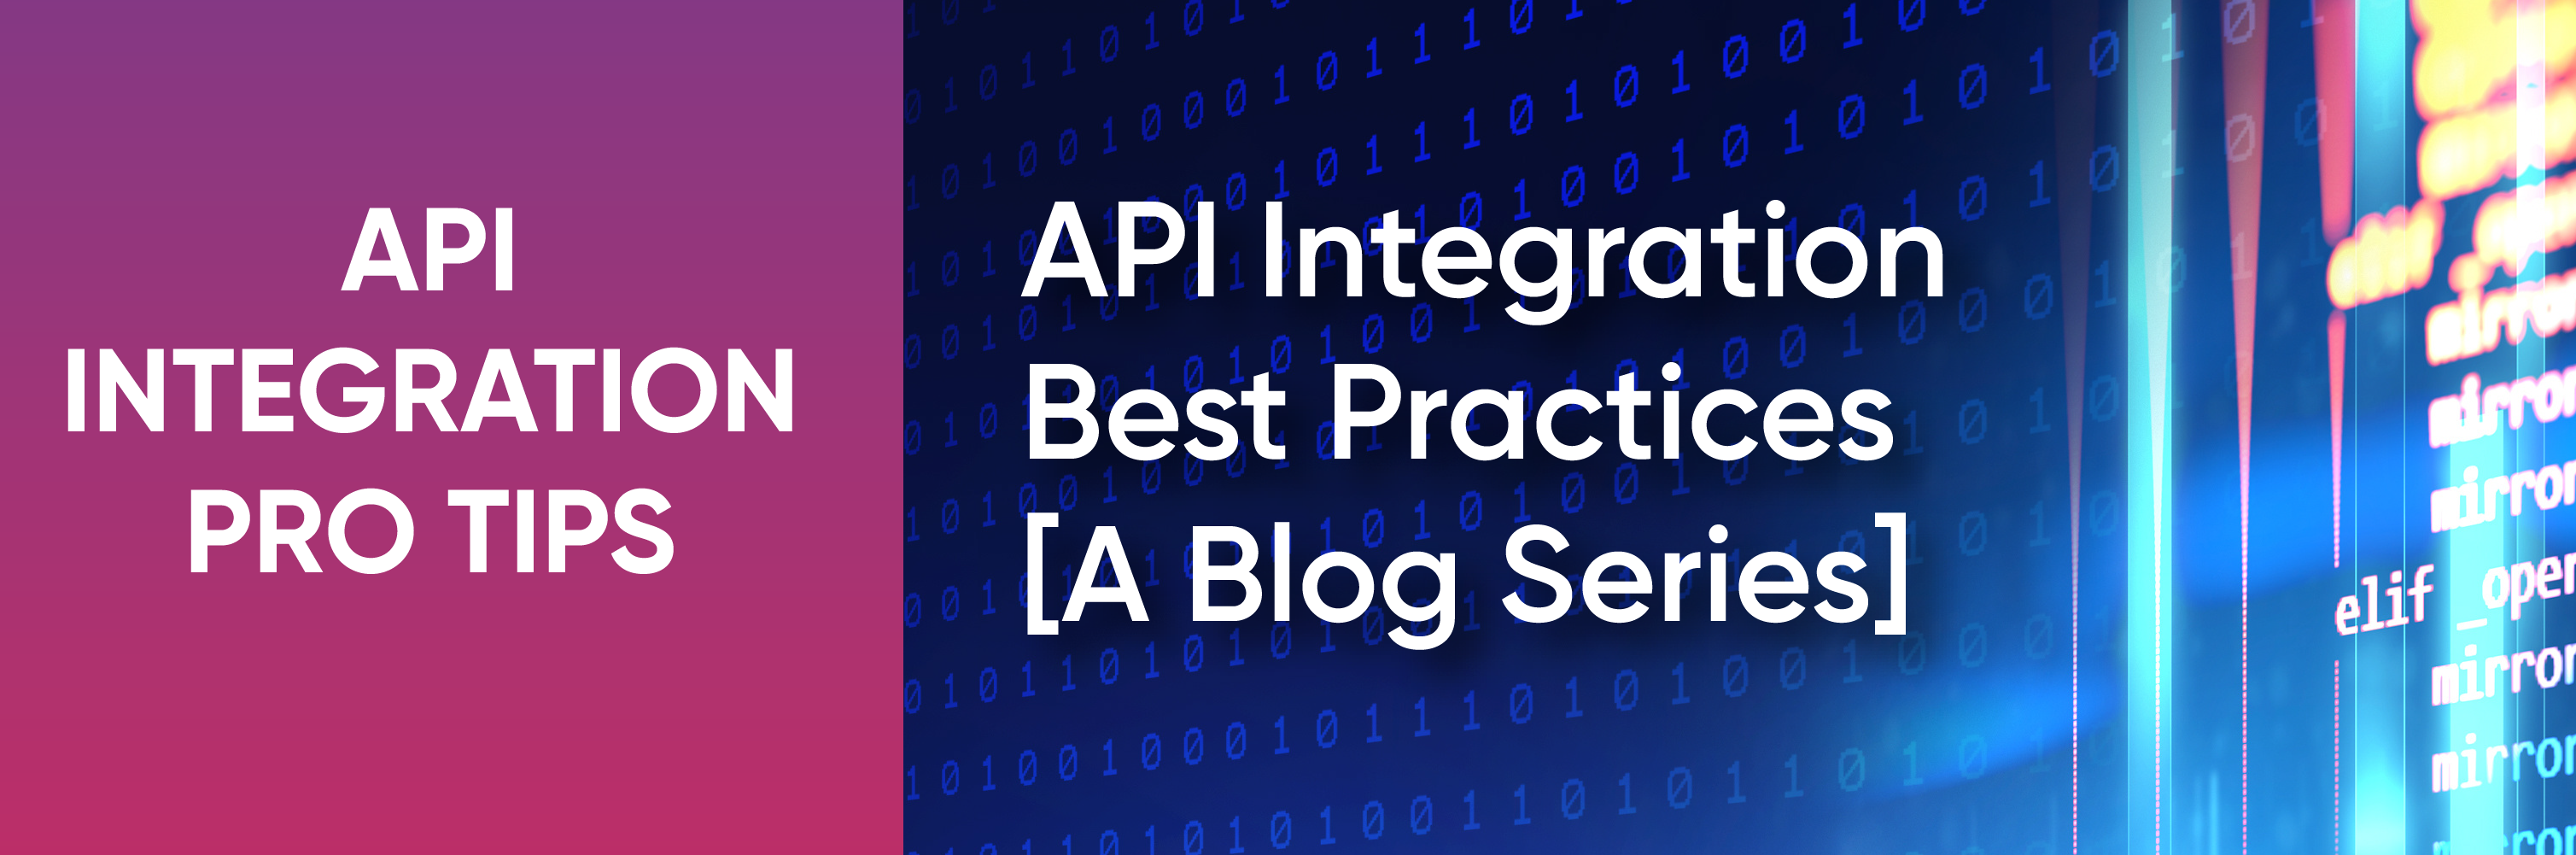 API integration best practices